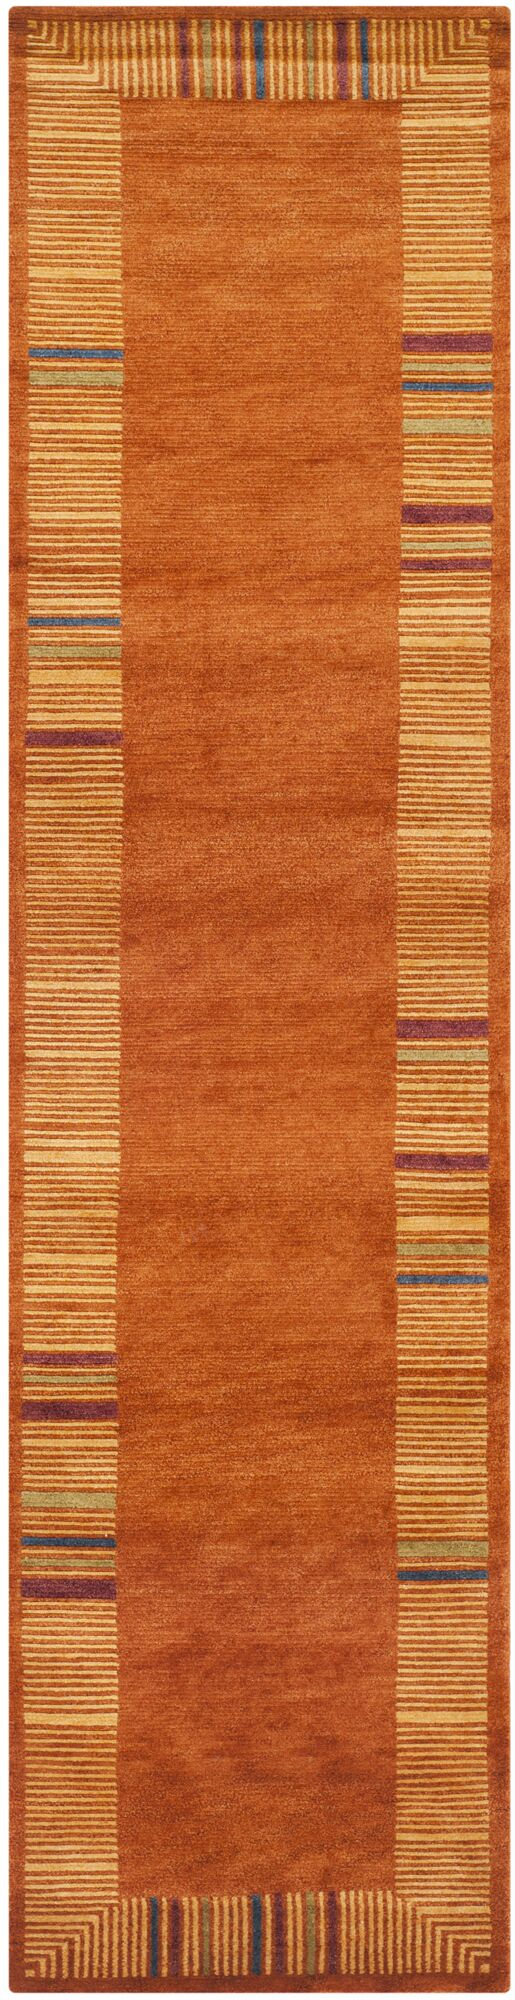 Kneiske Tibetan Hand Knotted Rust Area Rug Rug Size: Runner 2'6